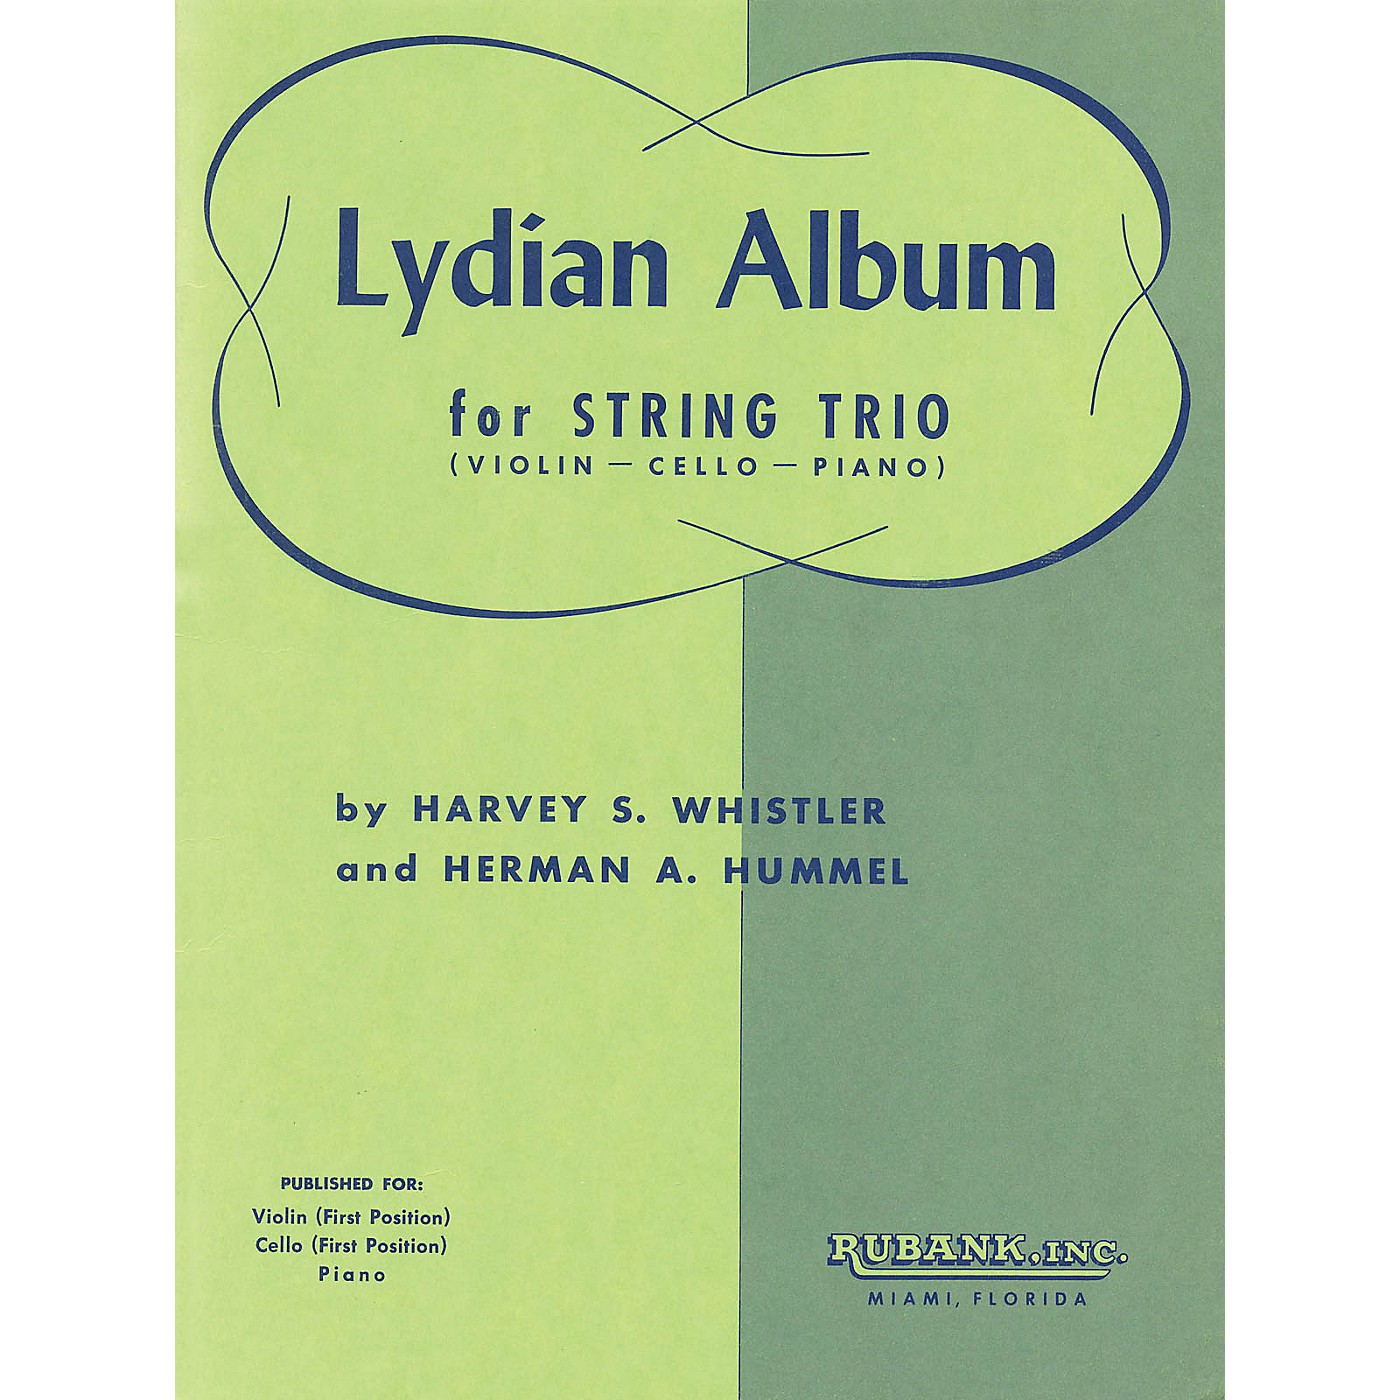 Rubank Publications Lydian Album (Violin, Cello and Piano) Ensemble Collection Series Arranged by Harvey S. Whistler thumbnail